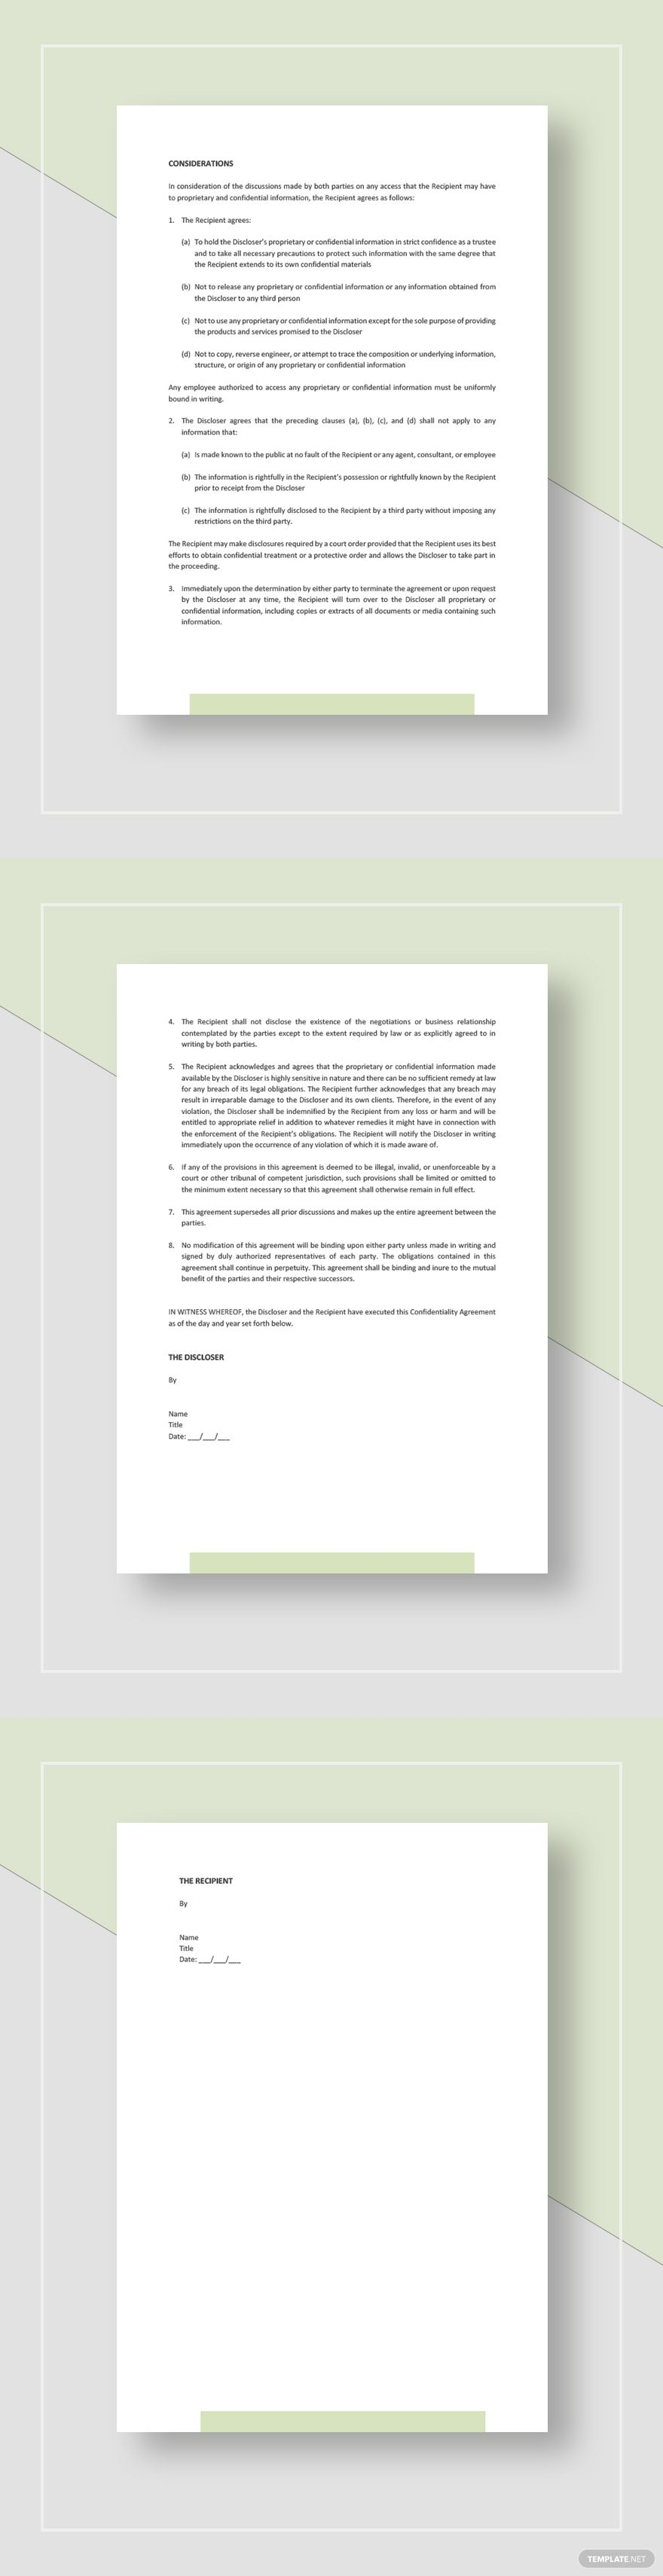 Legal Confidentiality Agreement Template Free Pdf Word Apple Pages Google Docs Words Templates Word Doc